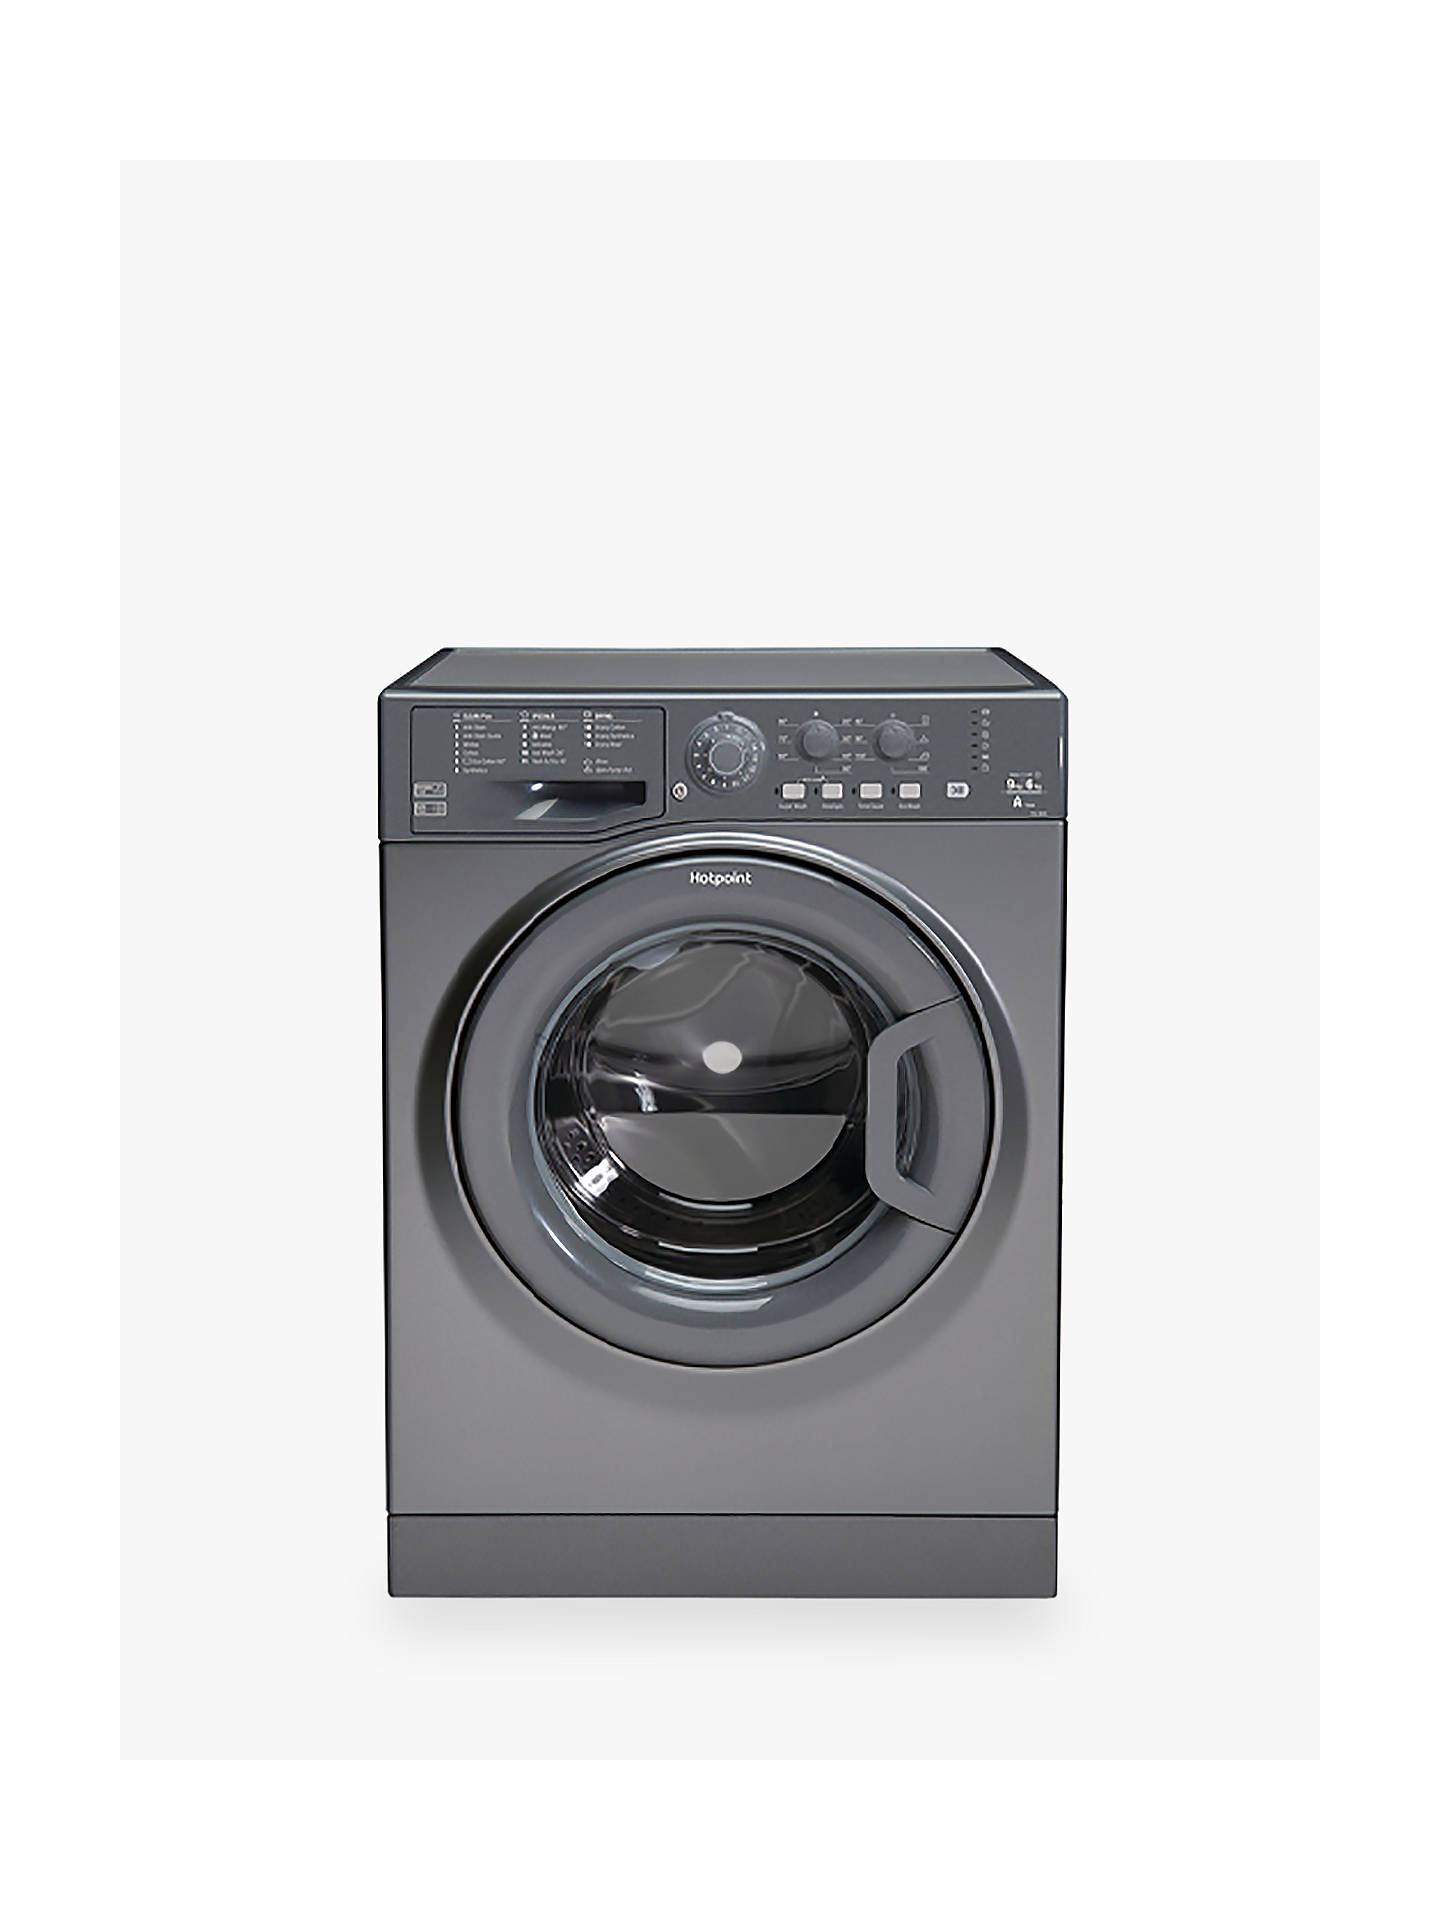 Buy Hotpoint FDL9640G UK Freestanding Washer Dryer, 9kg Wash/6kg Dry Load, A Energy Rating, 1400rpm Spin, Grey/Graphite Online at johnlewis.com